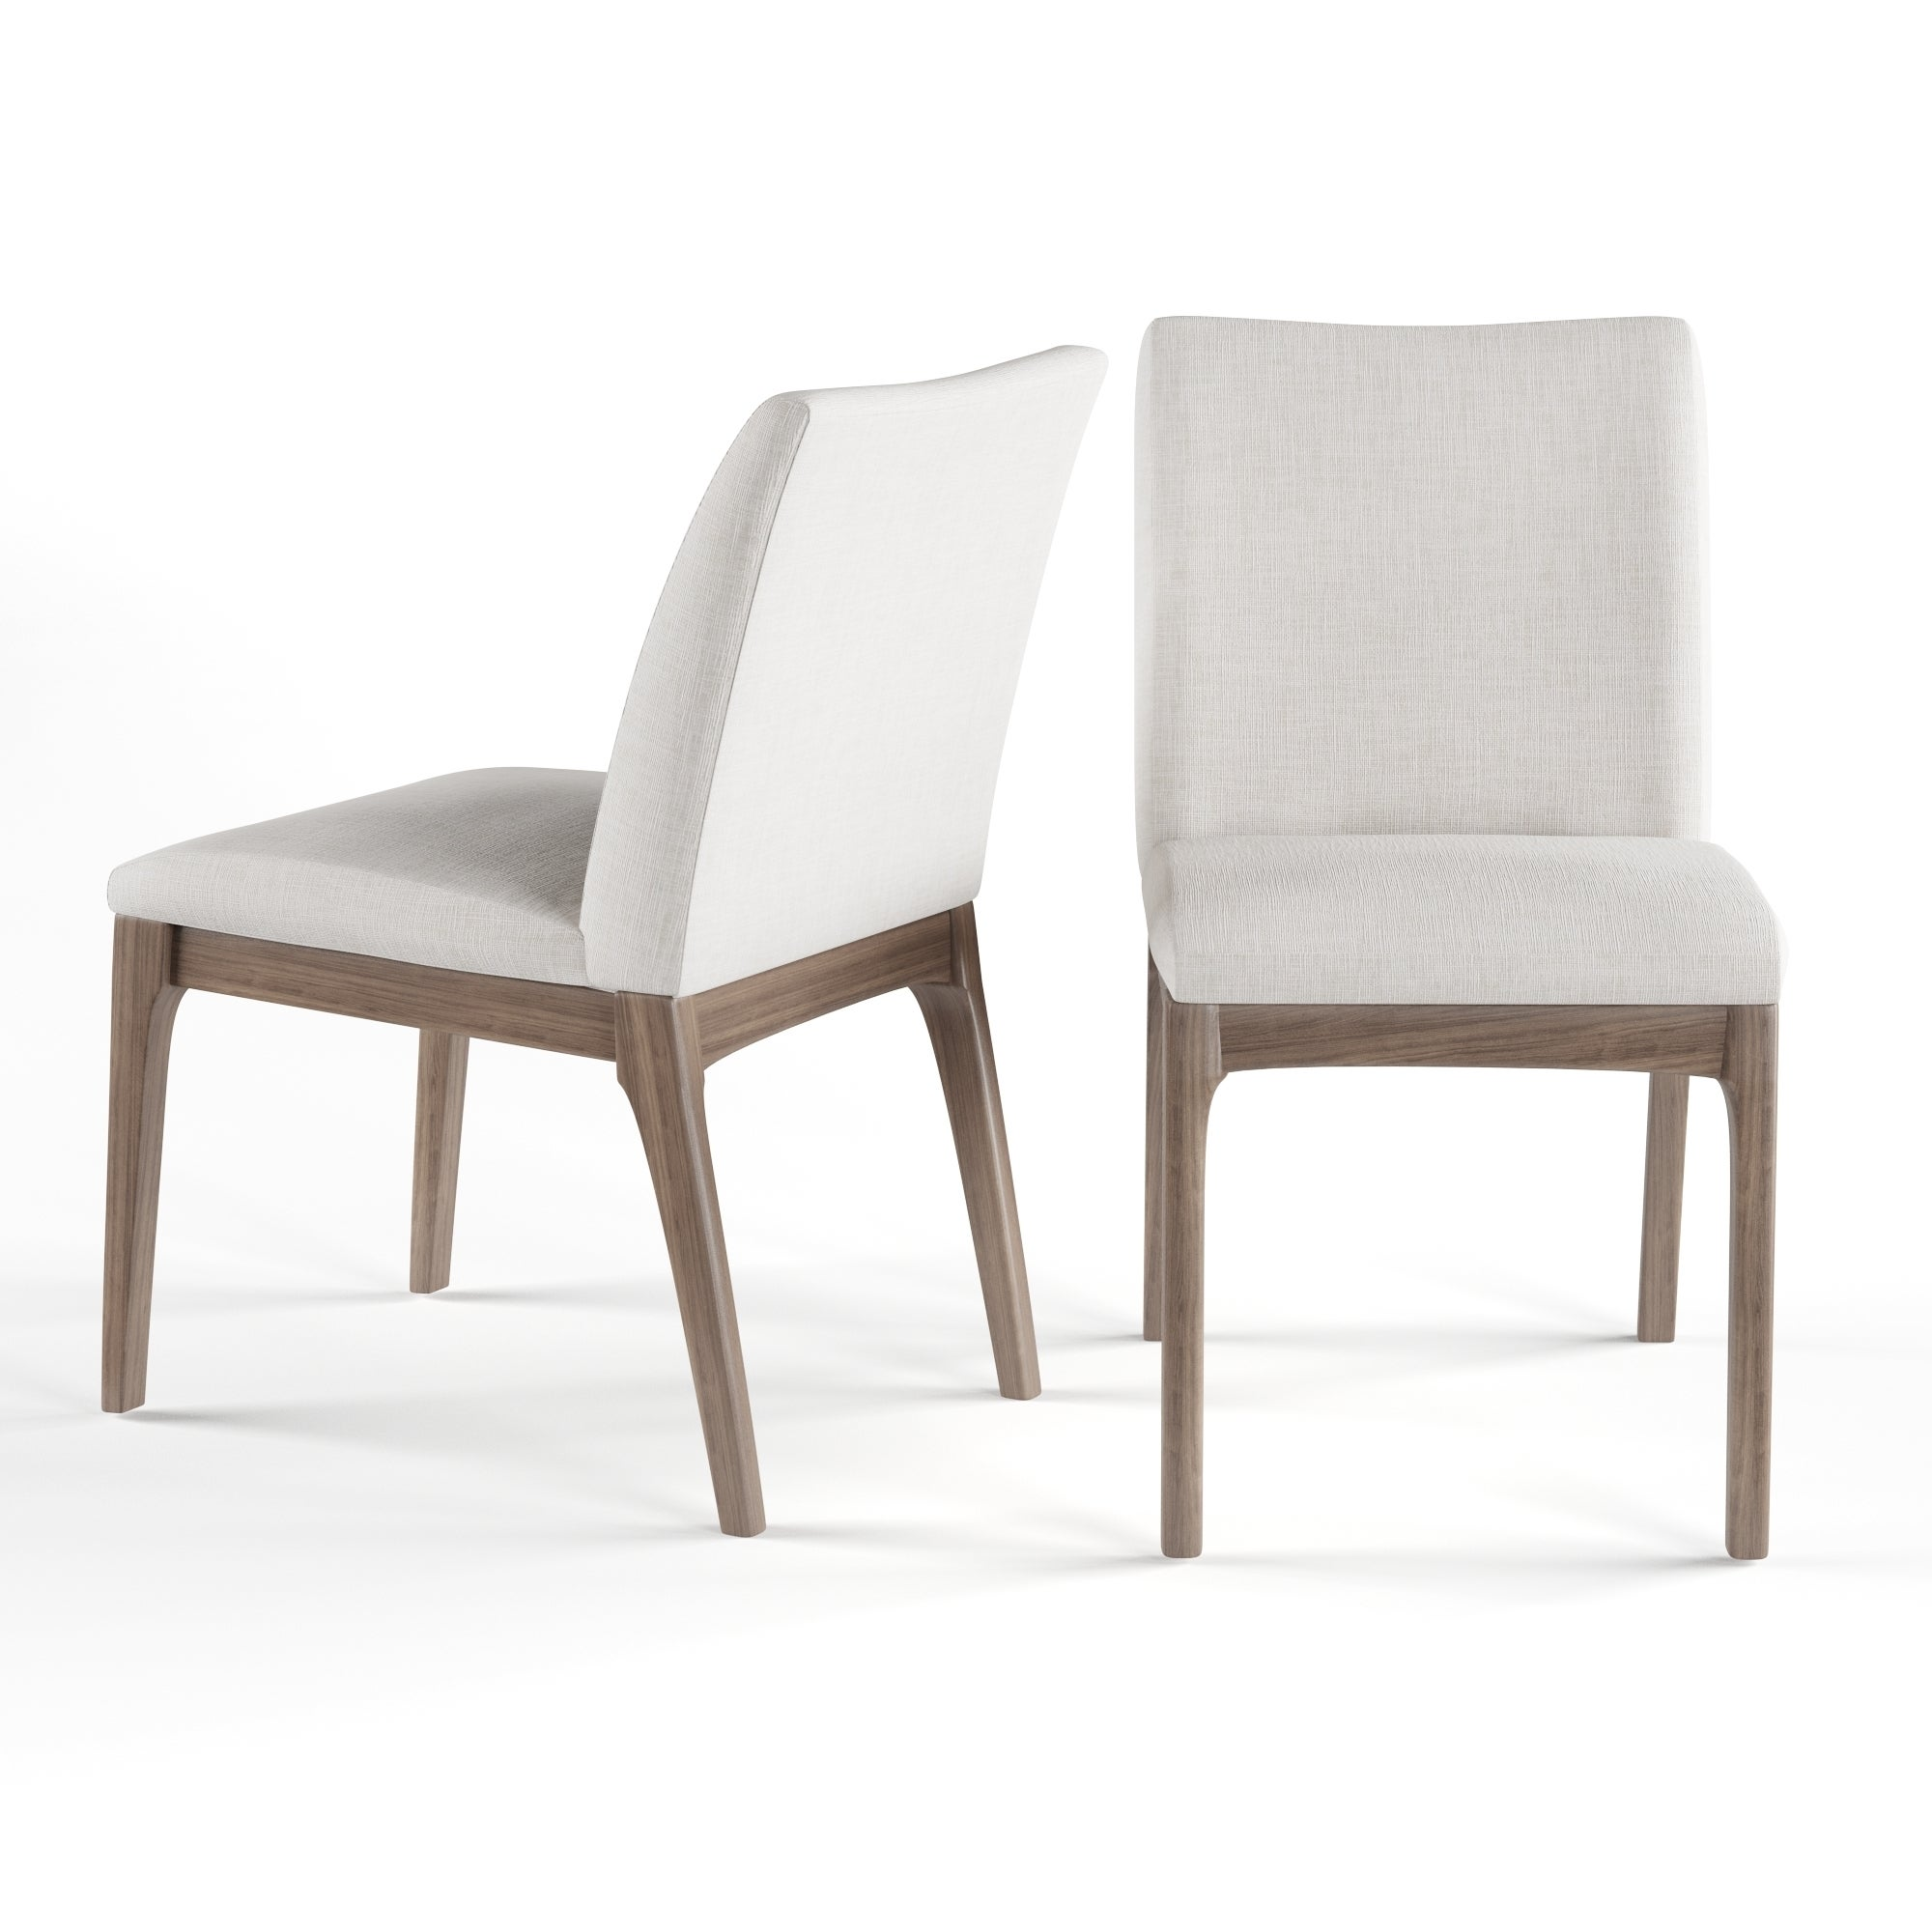 mid century dining chair. Simple Living Element Mid Century Dining Chairs (Set Of 2) Chair I